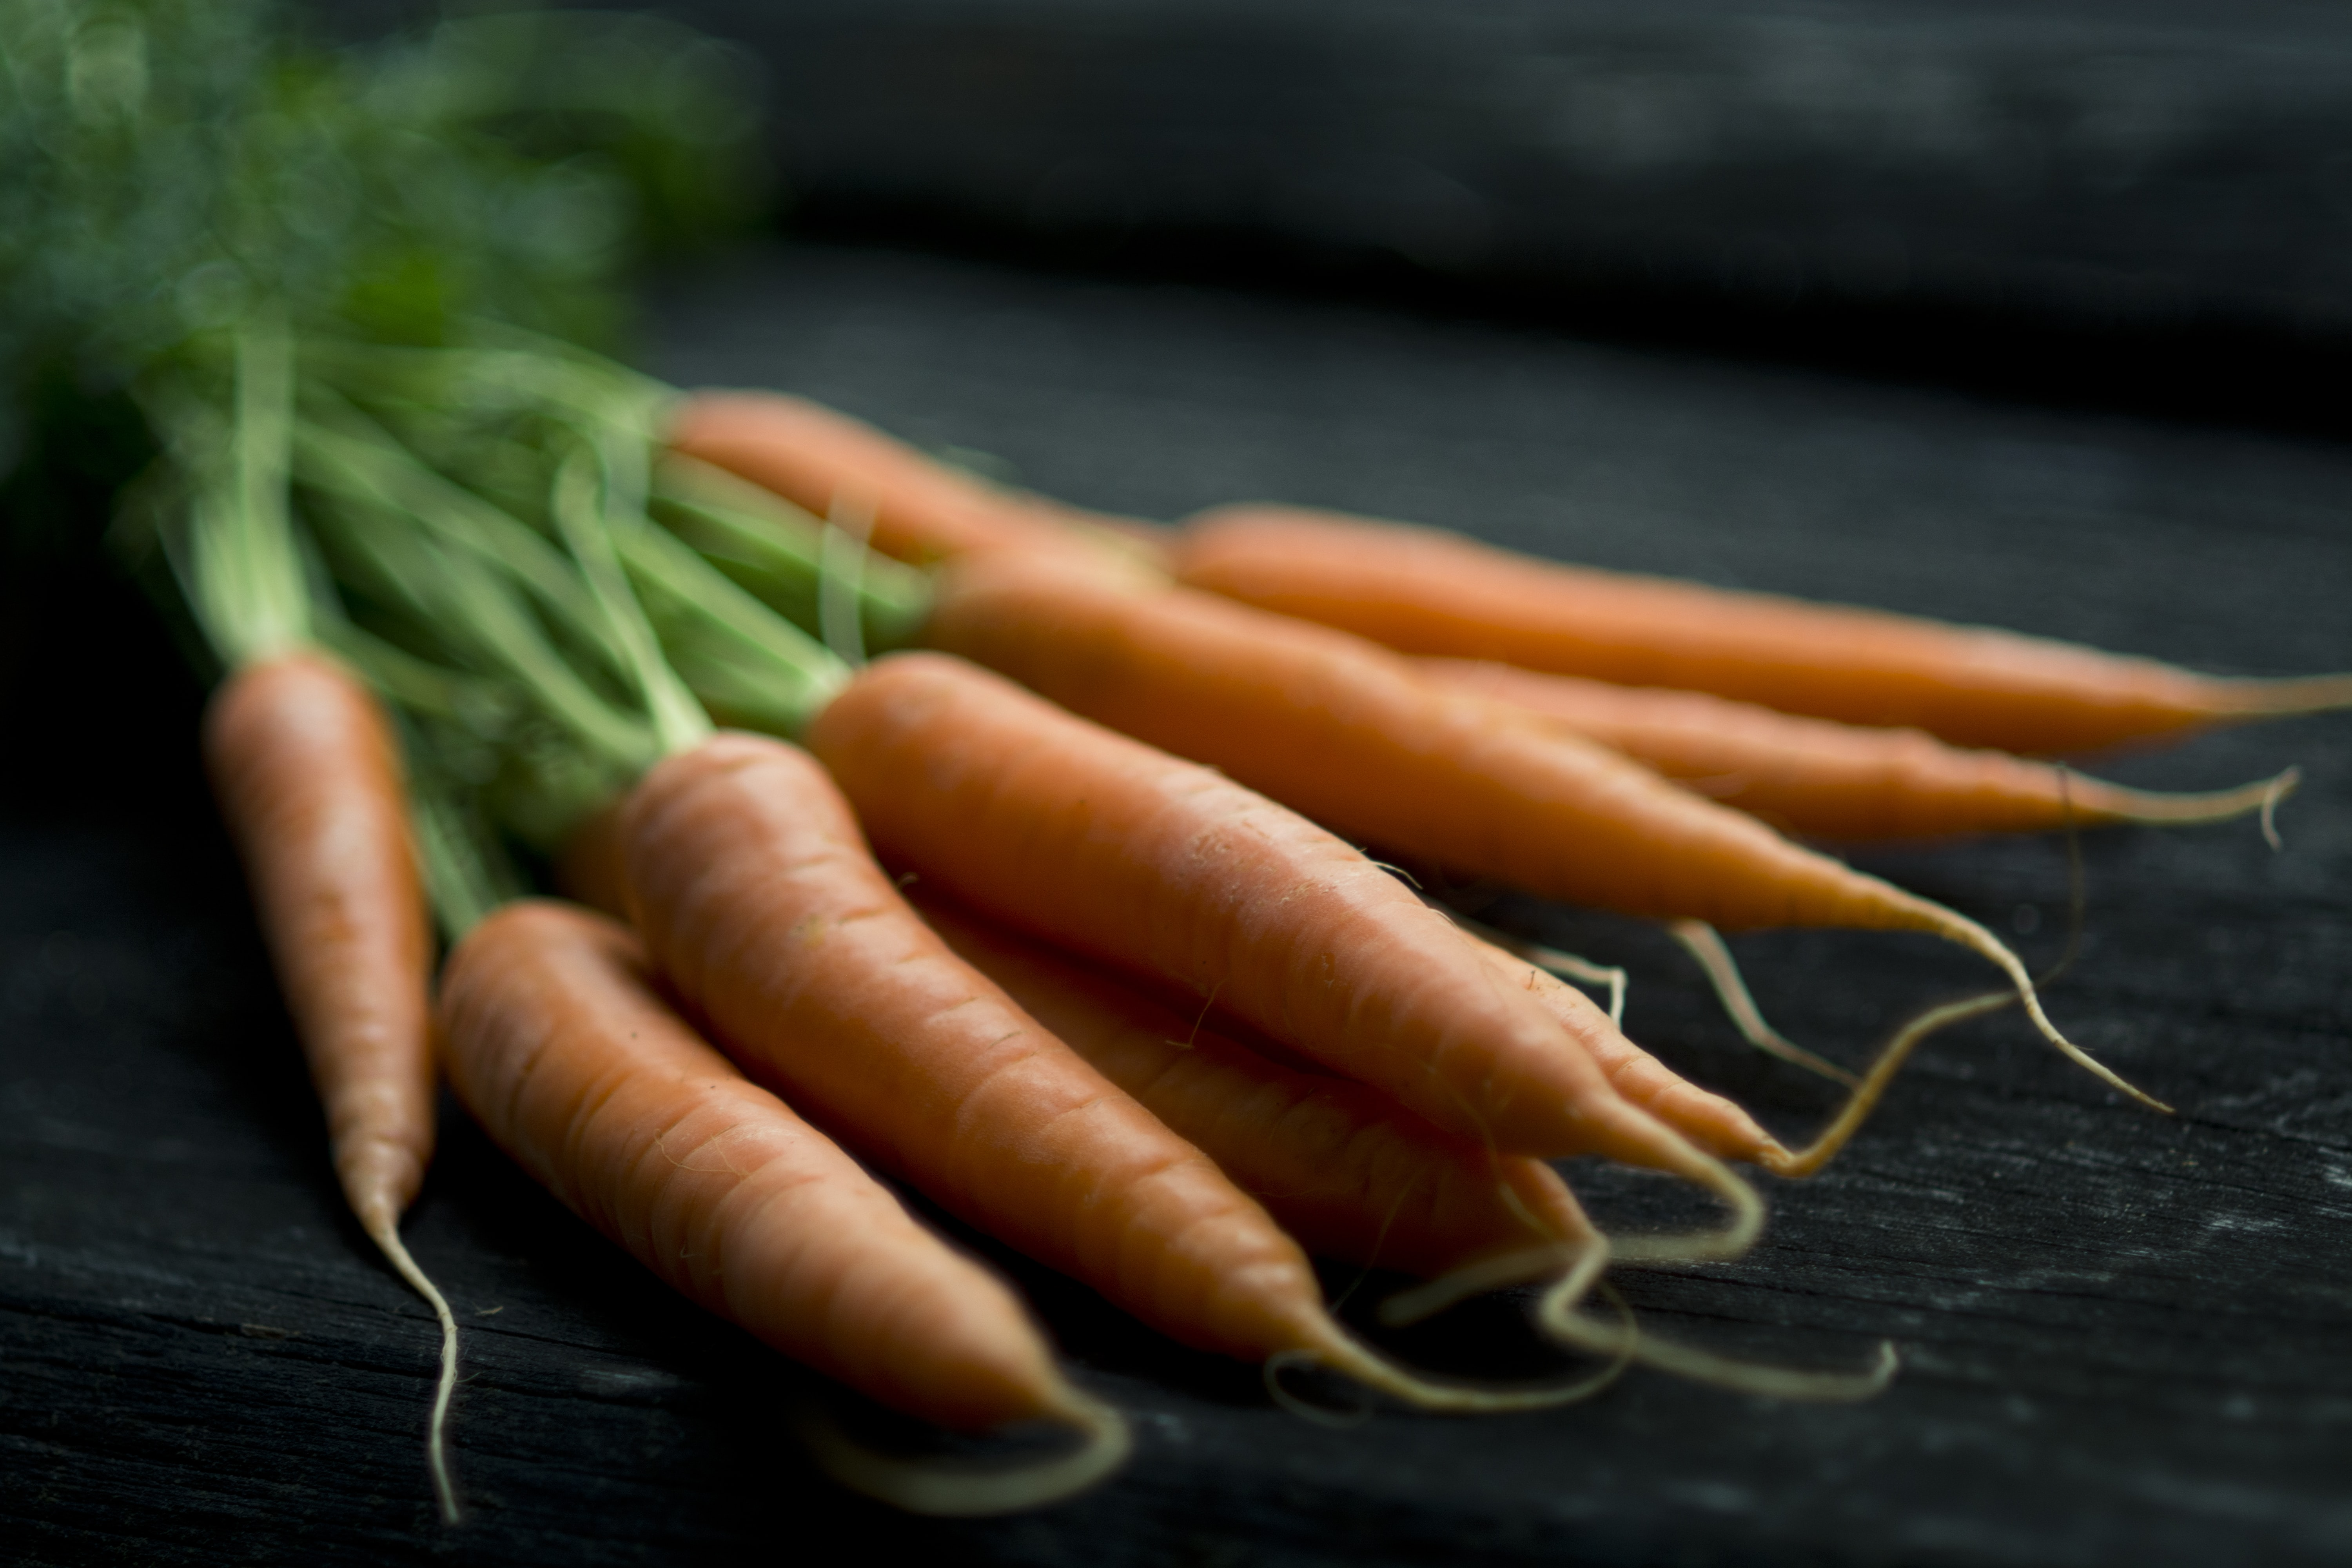 Carrots laying on a table in Wien